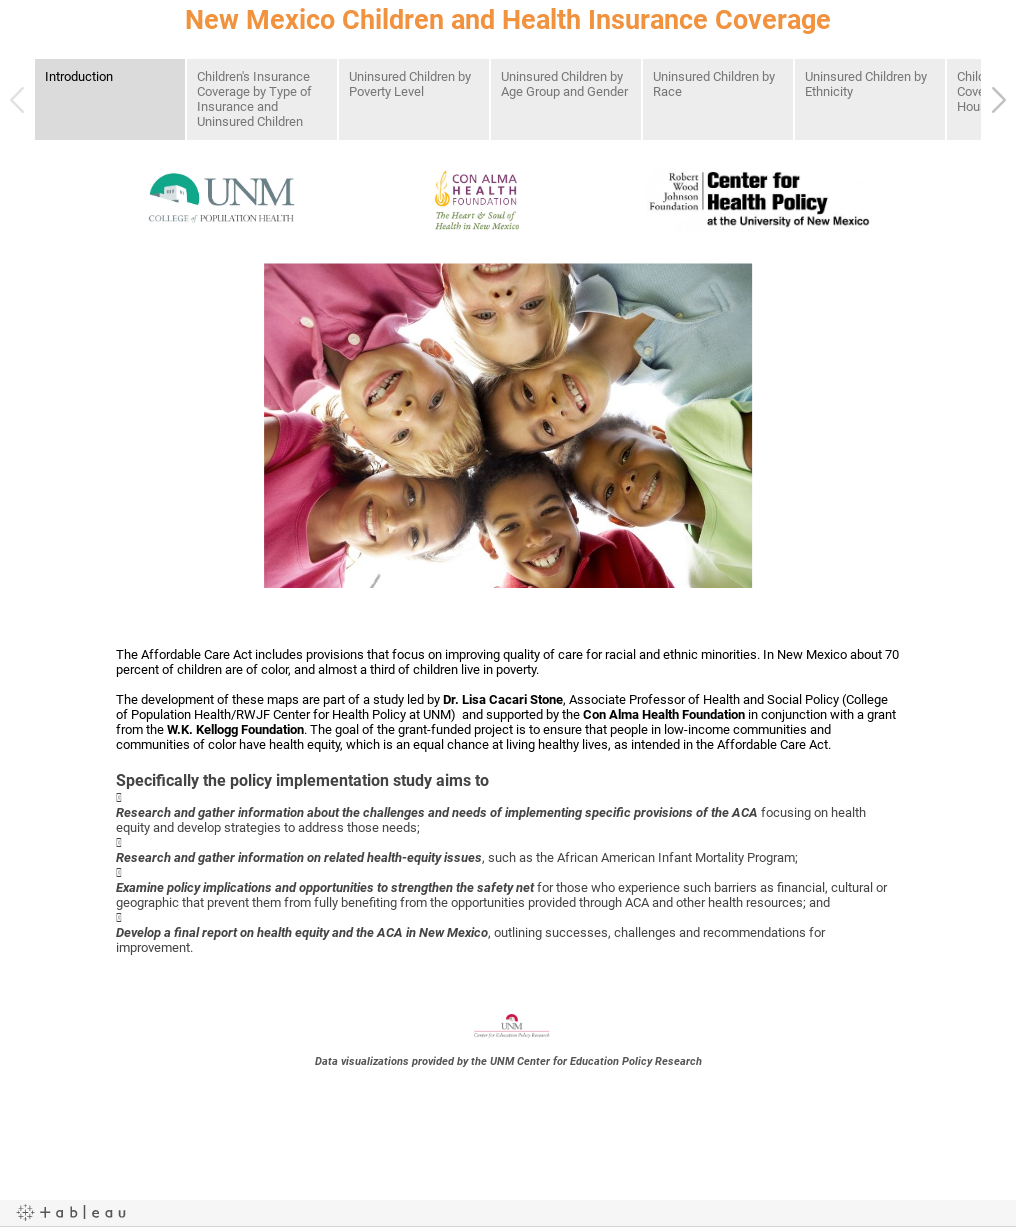 New Mexico Children and Health Insurance Coverage